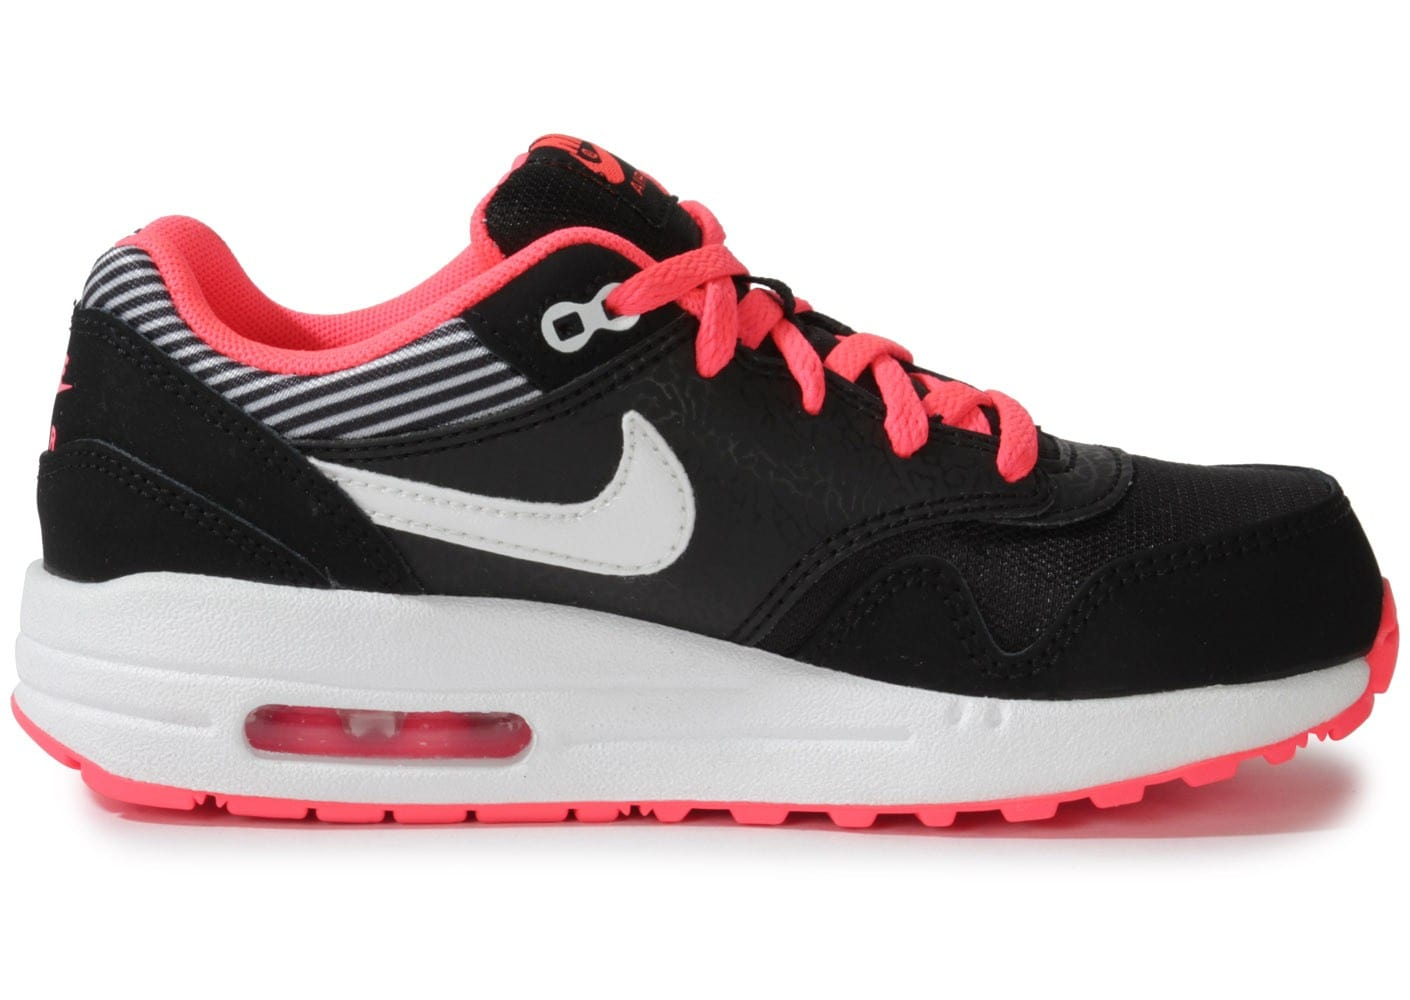 nike air max 1 enfant noire rose chaussures chaussures chausport. Black Bedroom Furniture Sets. Home Design Ideas